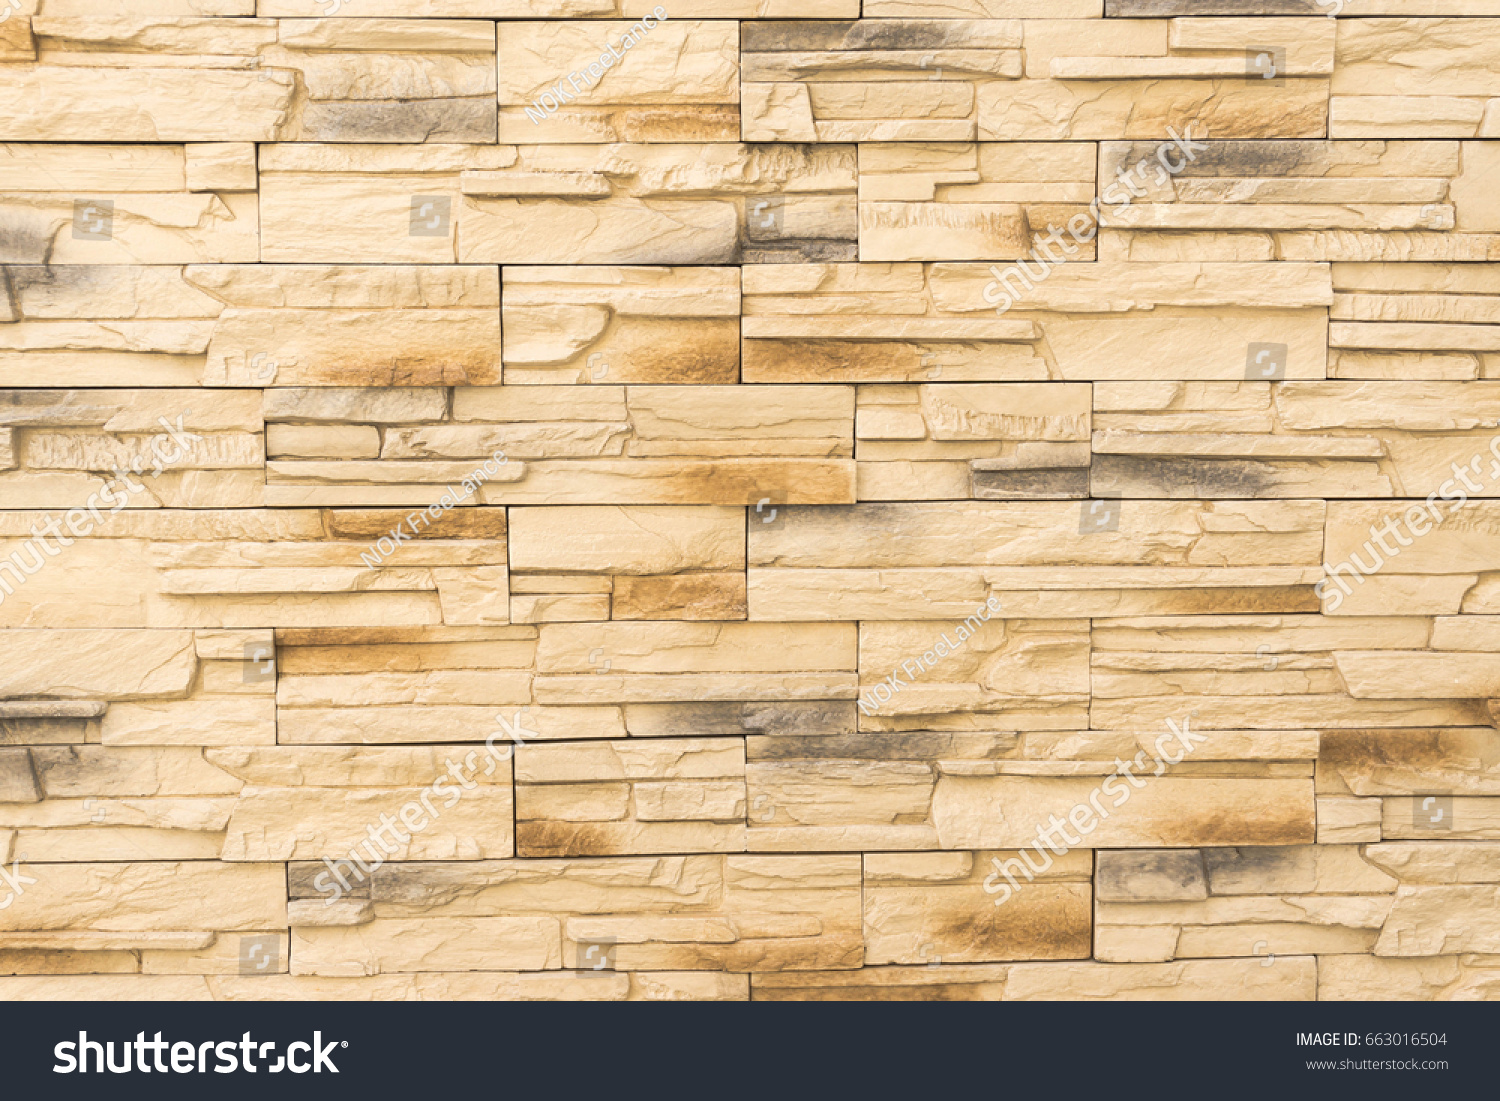 Old Brown Bricks Wall Pattern Brick Stock Photo (Edit Now) 663016504 ...